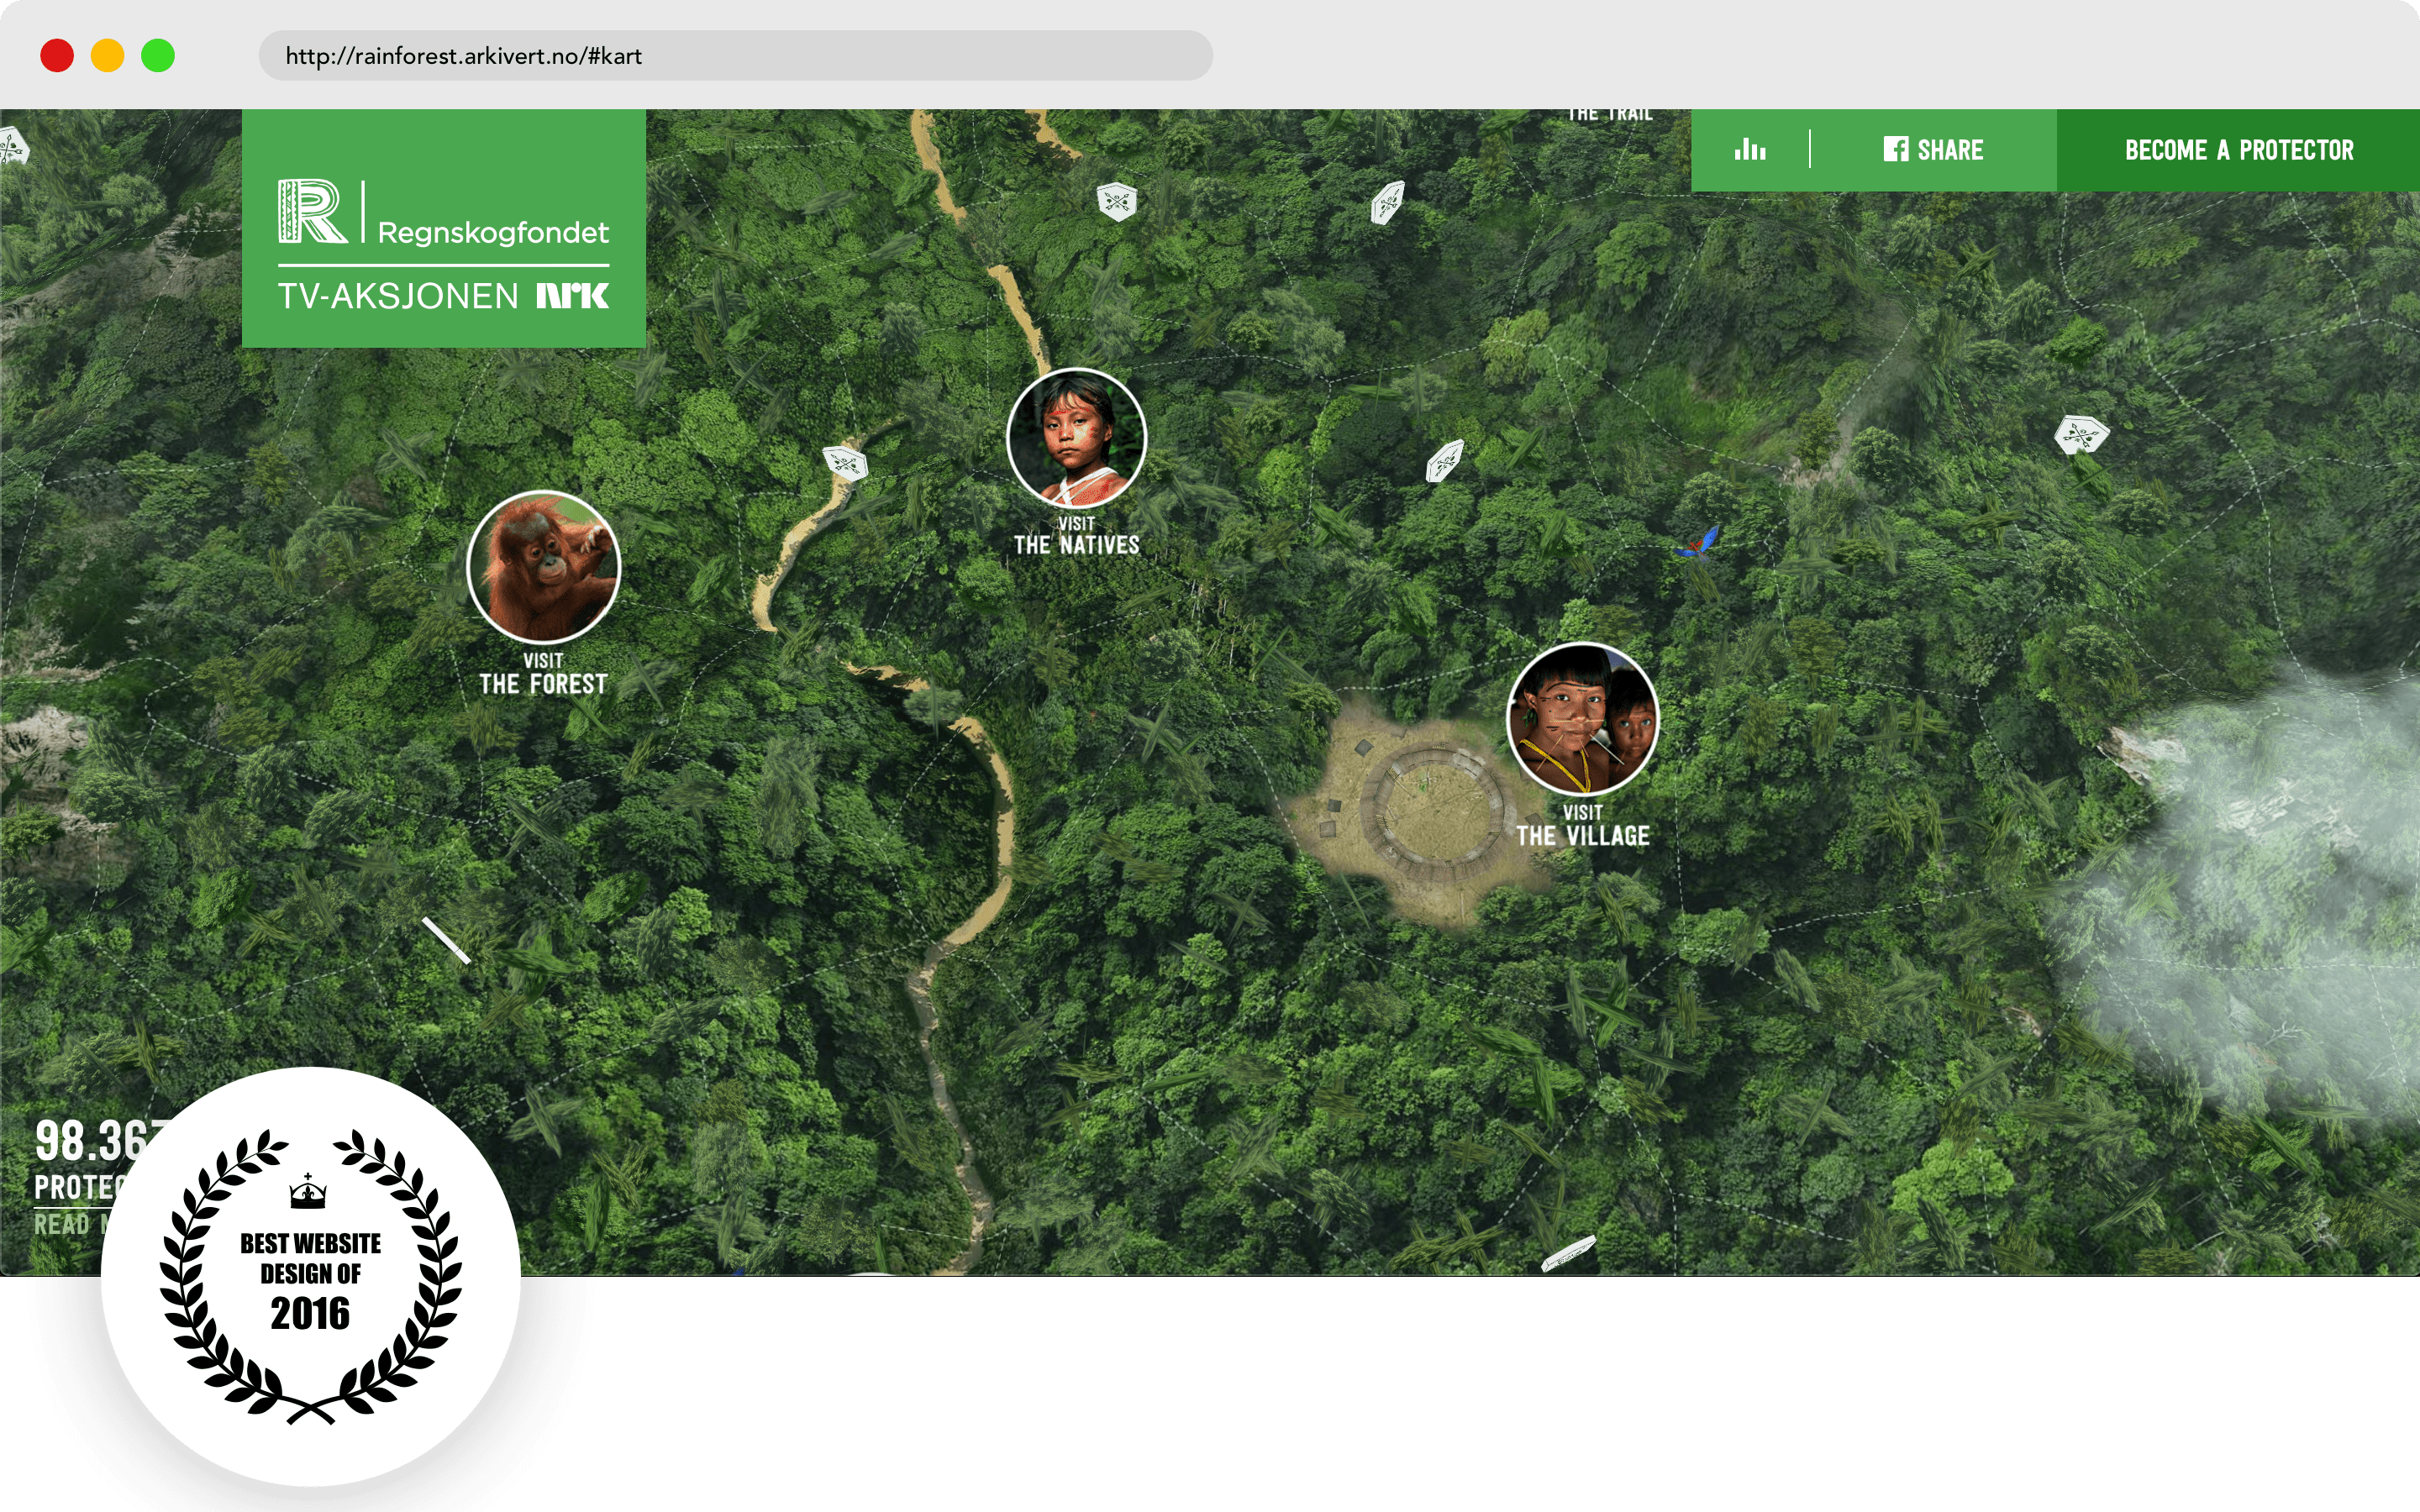 rainforest.arkivert Website Design